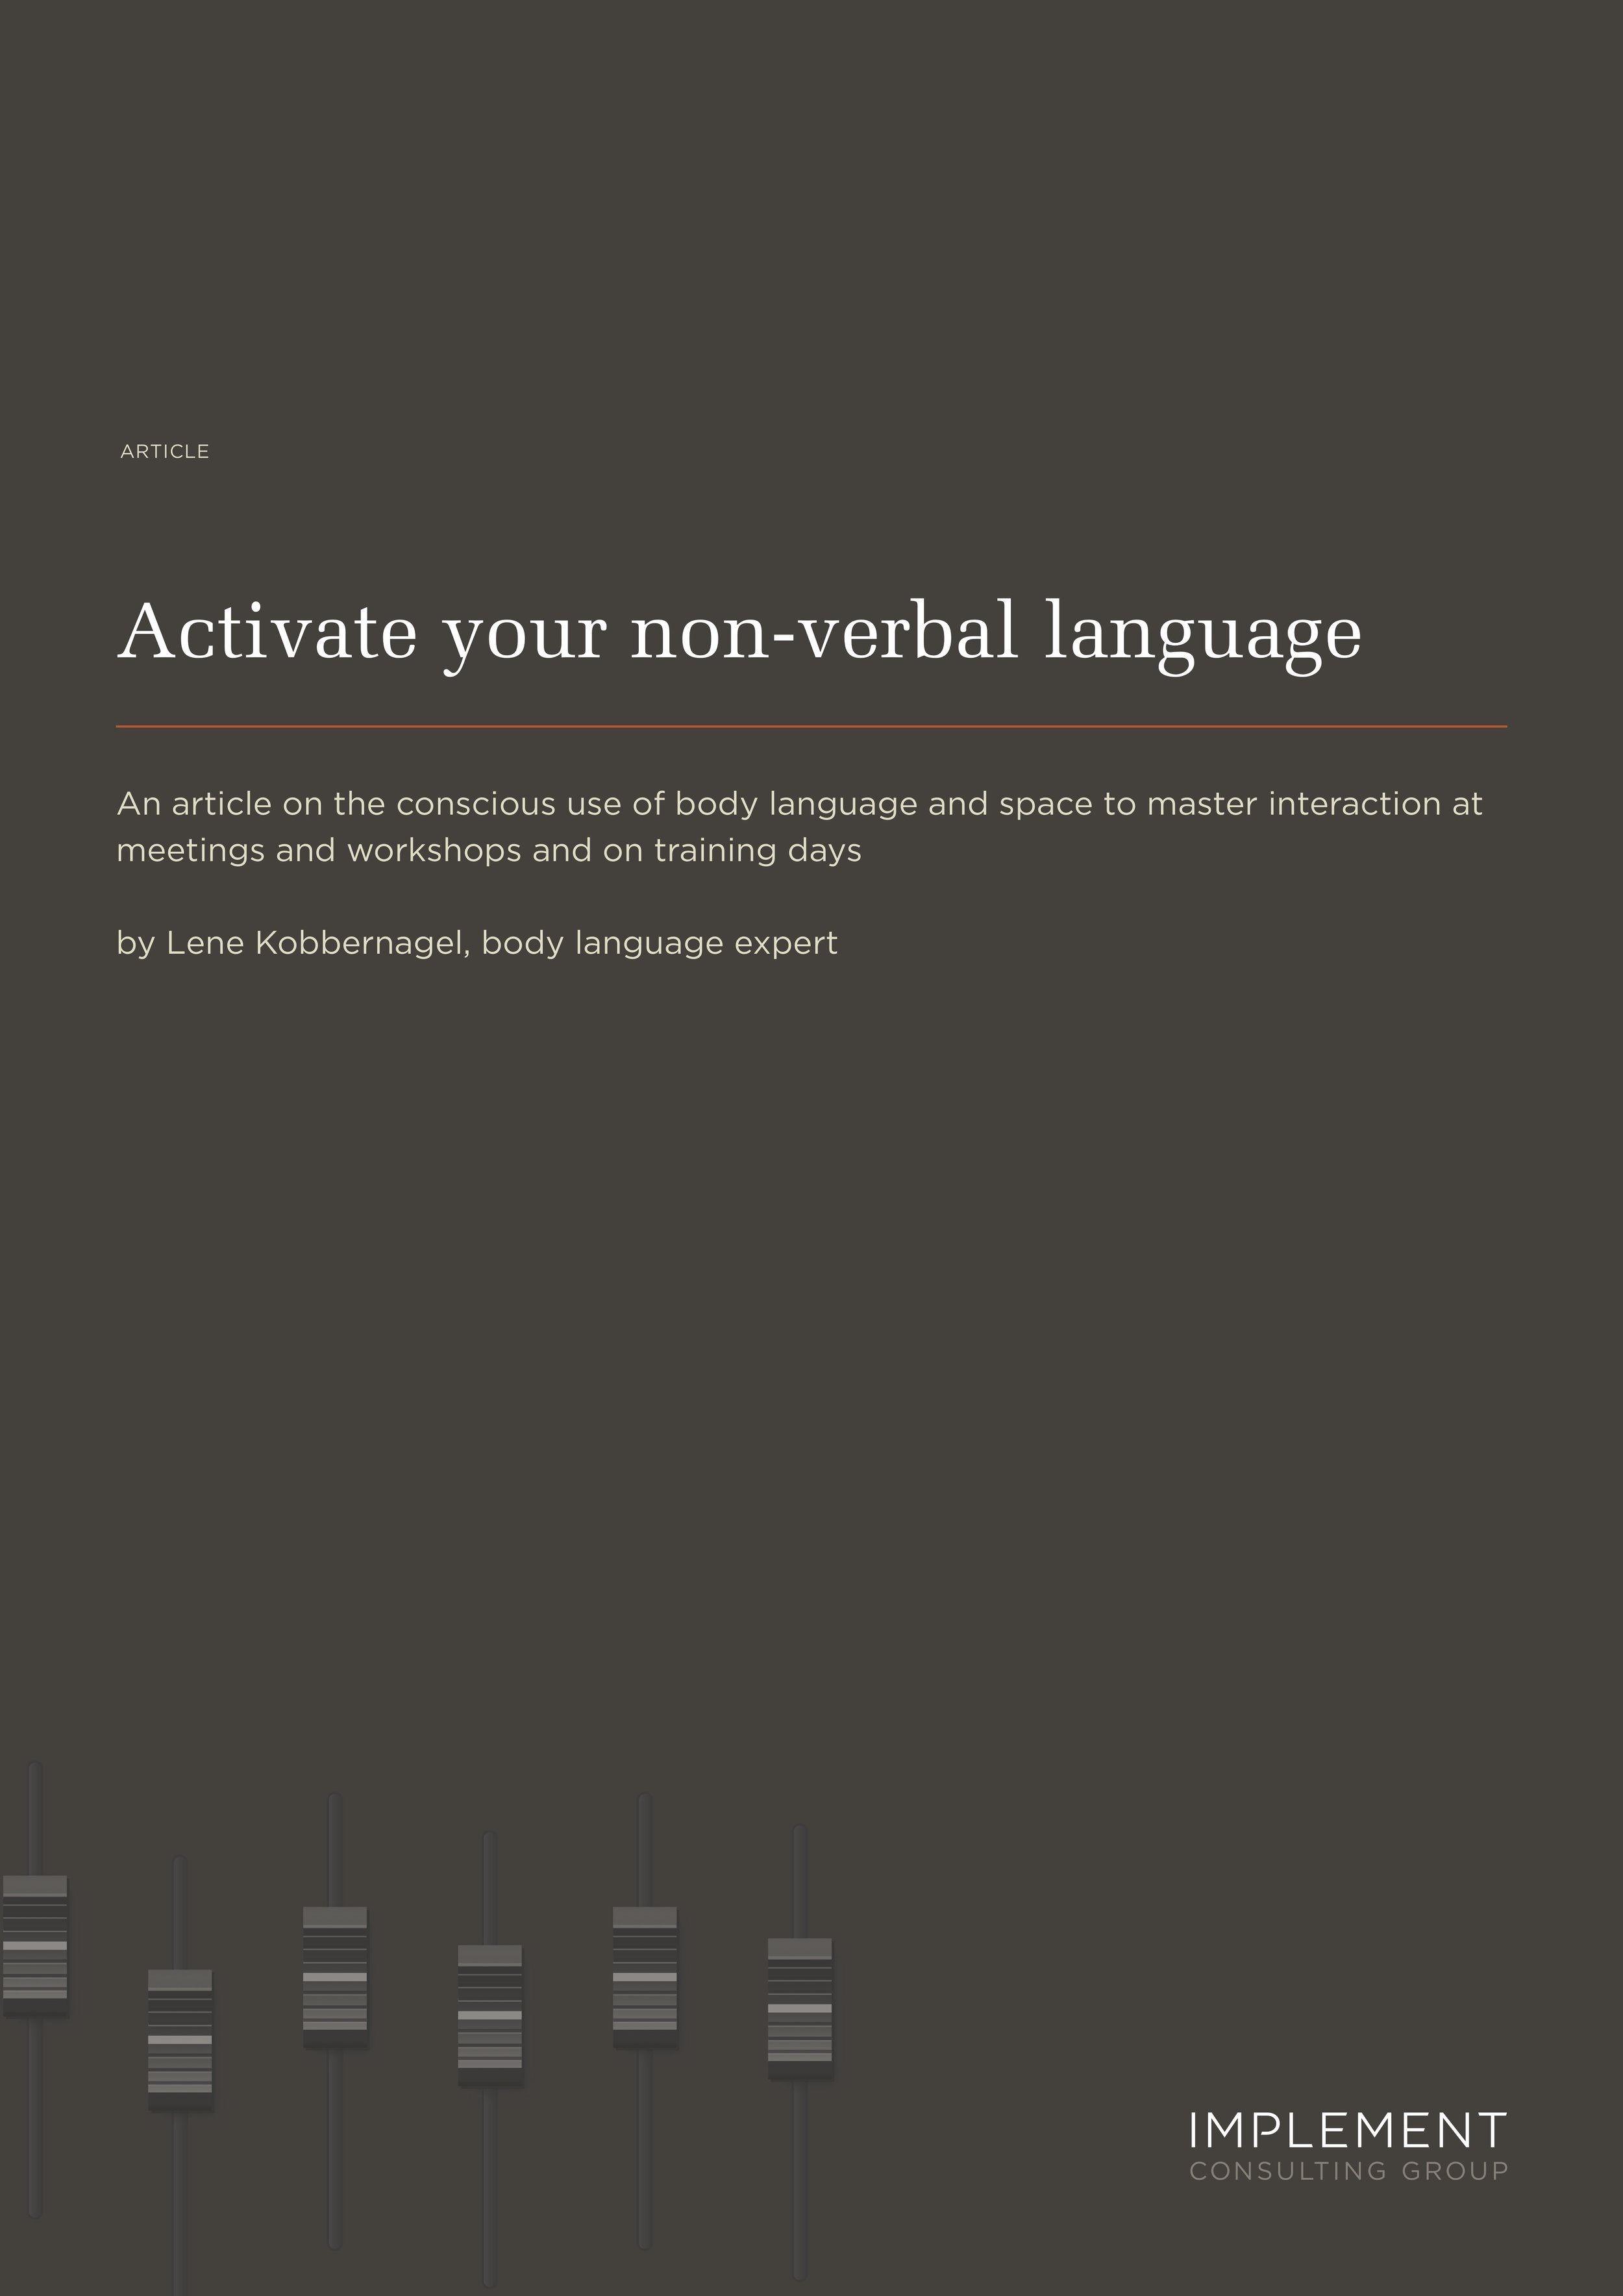 150316_Article_Activate your nonverbal language.jpg